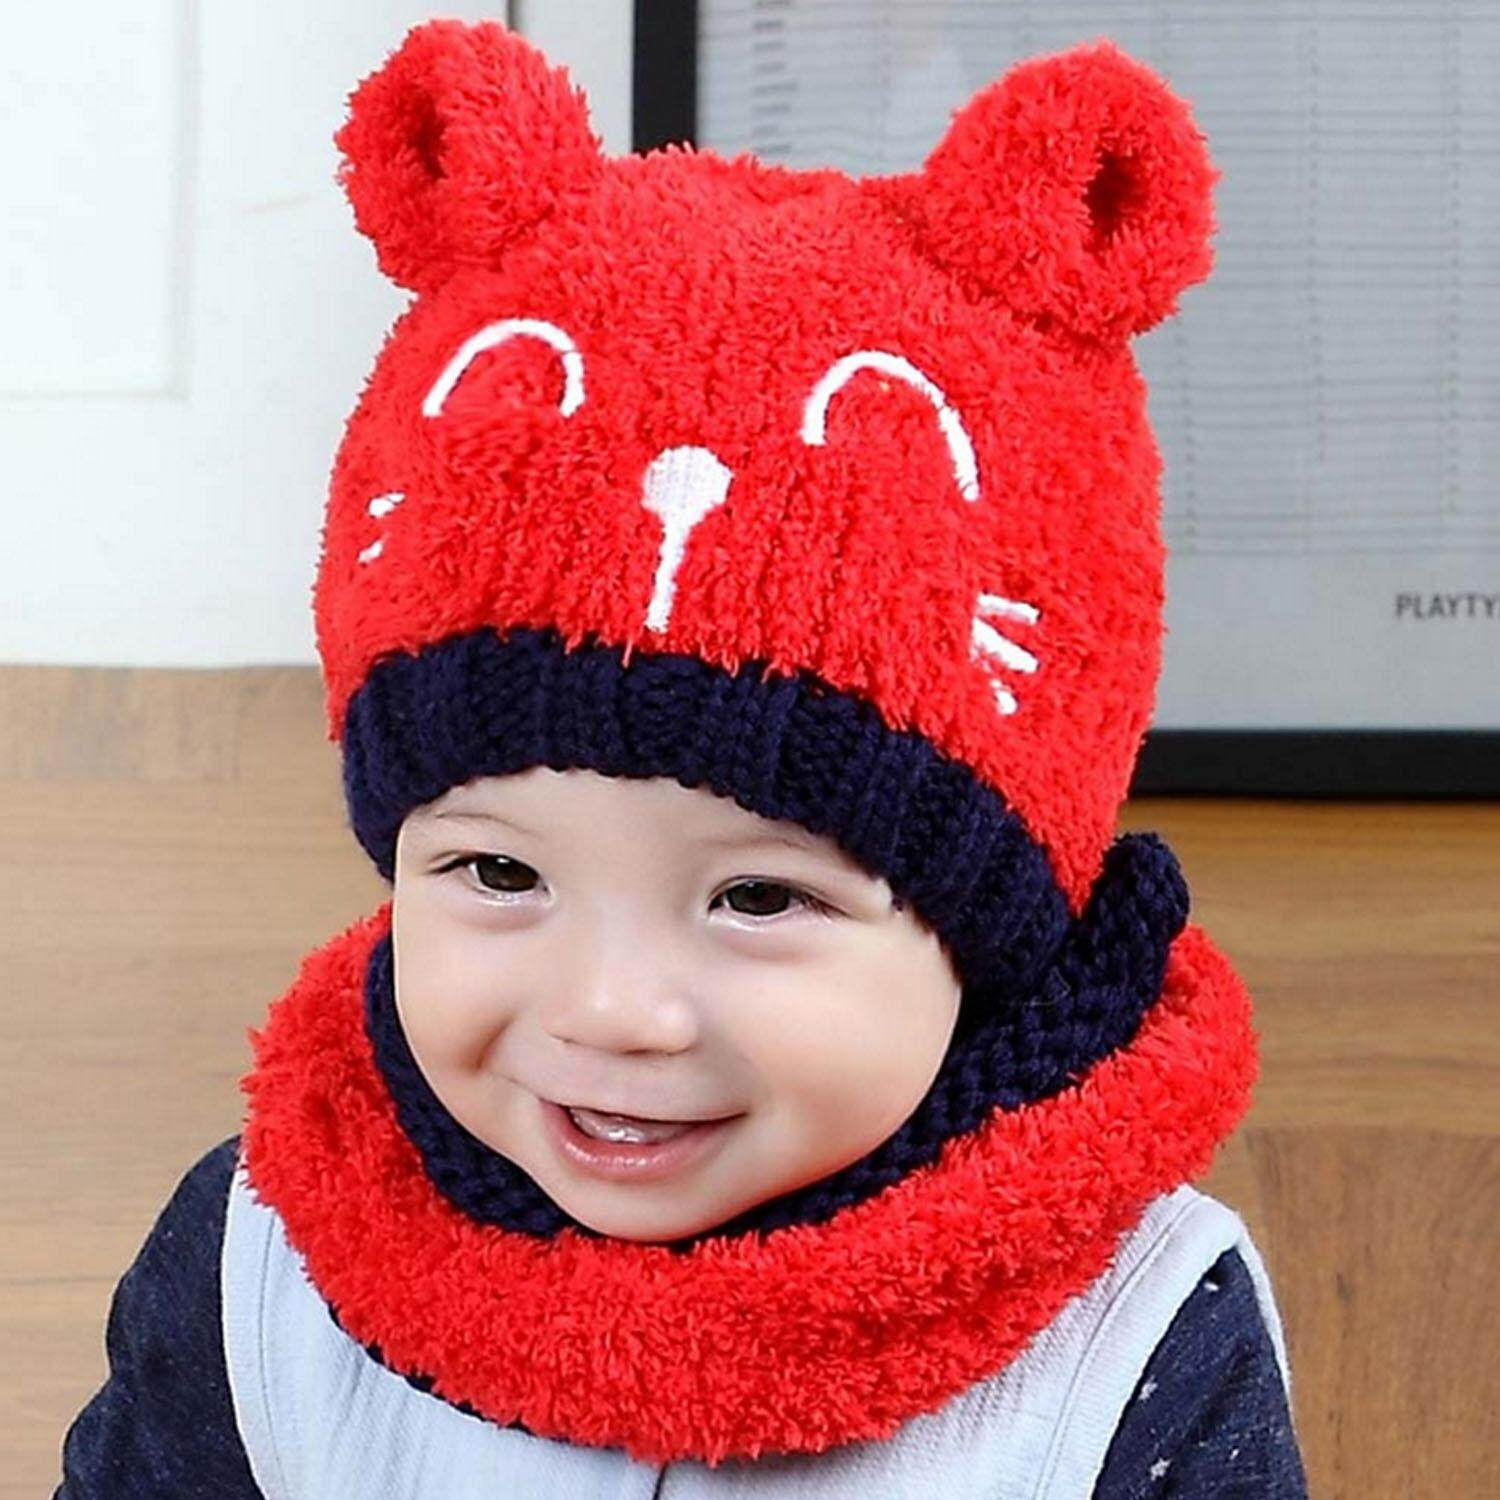 876cf7c4b39 2pcs Baby Infant Cute Winter Warm Soft Cat Knit Beanie Hat Cap with Circle  Scarf for